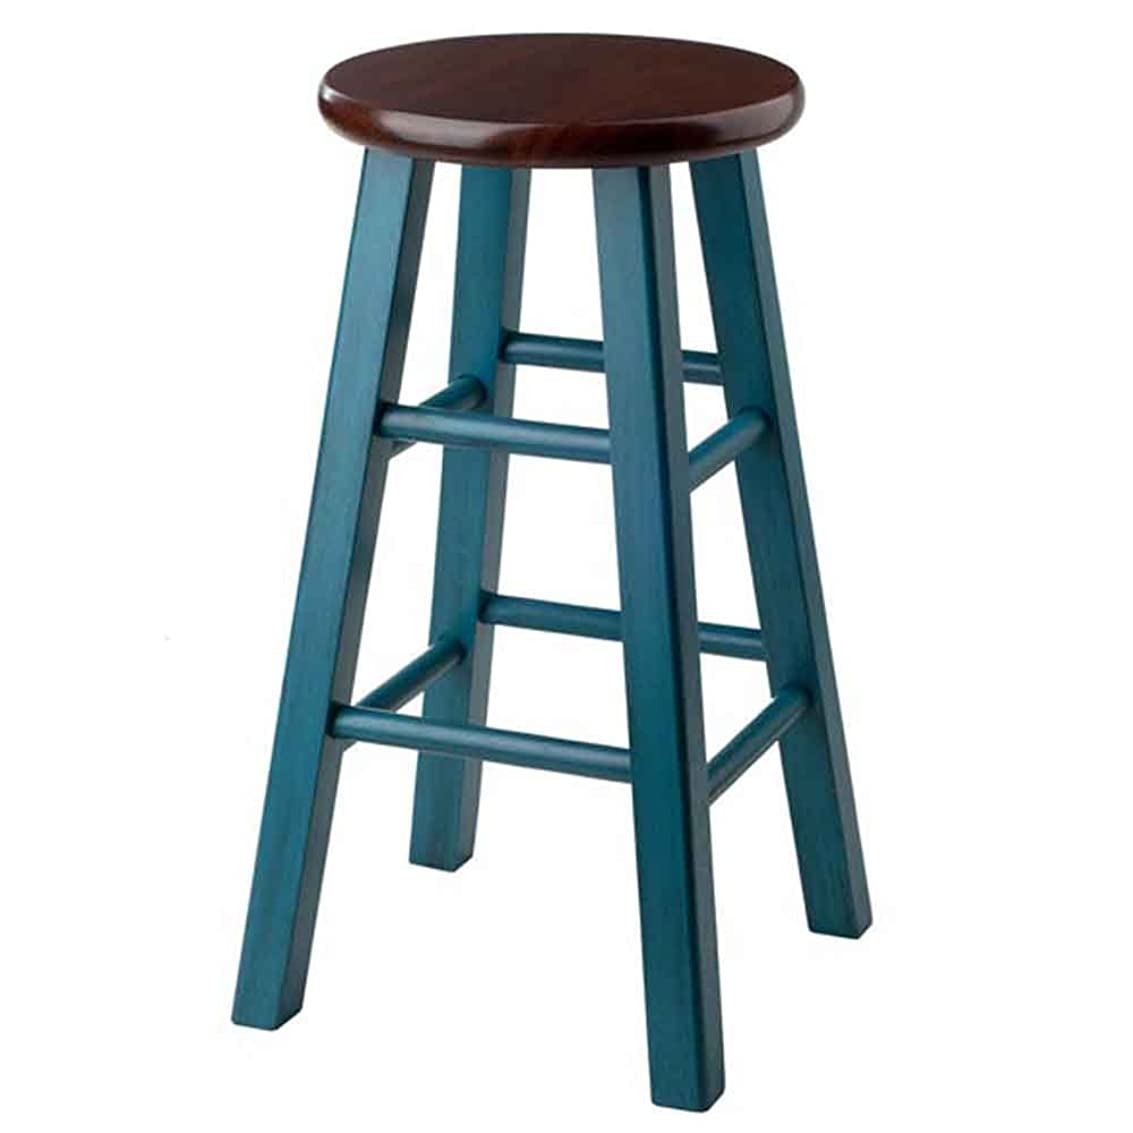 Winsome Wood 62224-WW Ivy Model Name Stool Rustic Teal/Walnut ykkpr5514213246